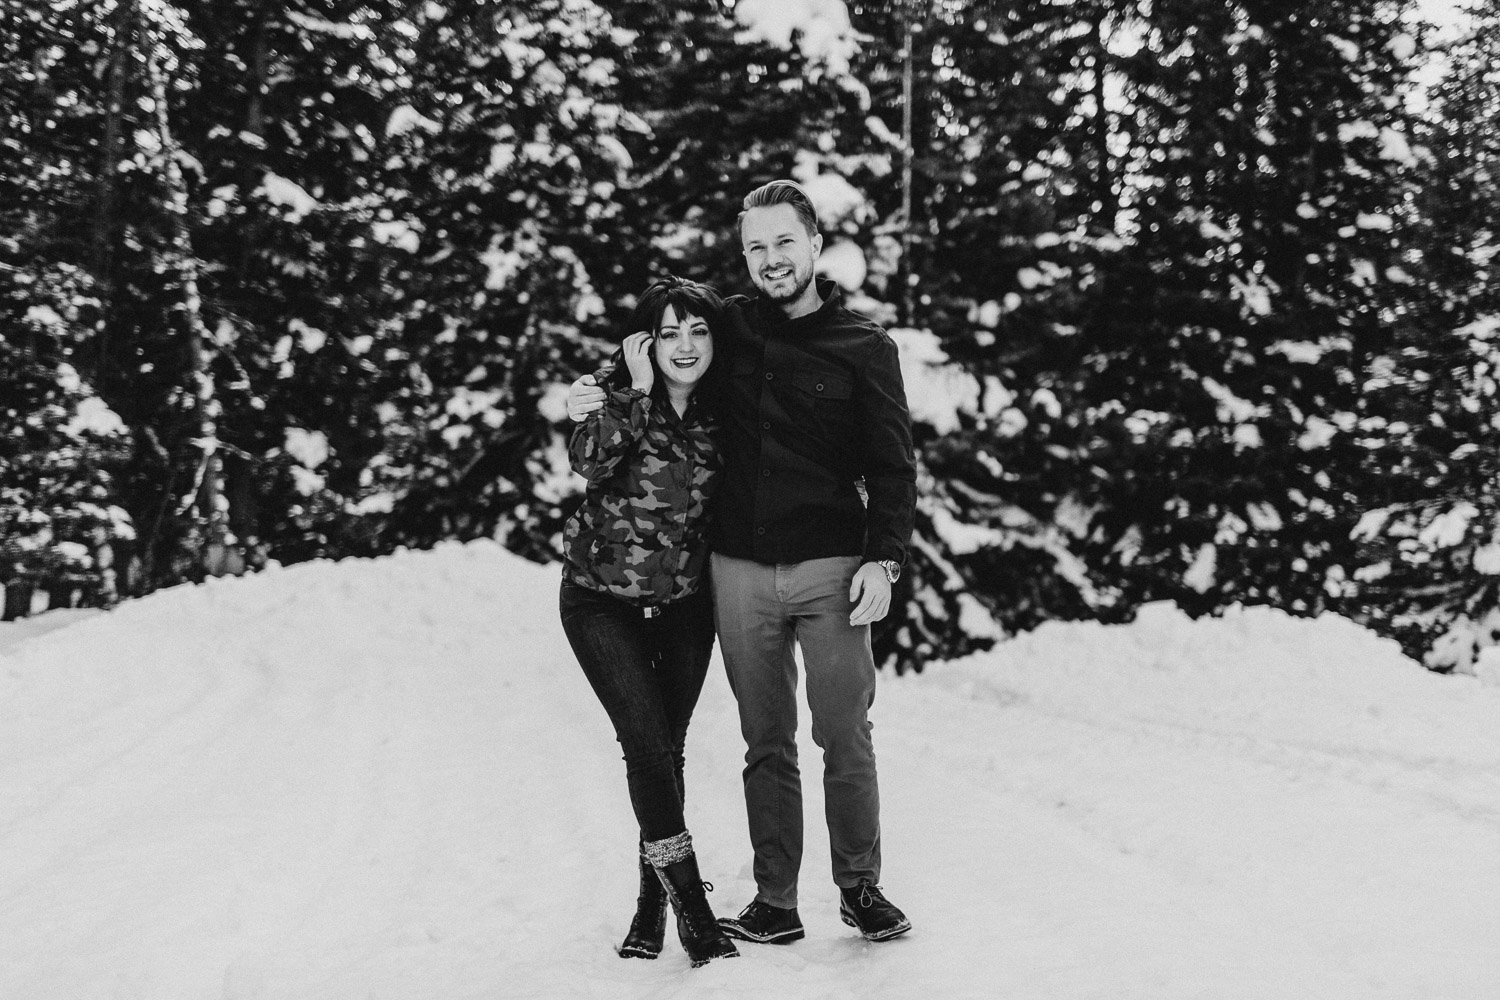 Black and White image of couple stand together in snow